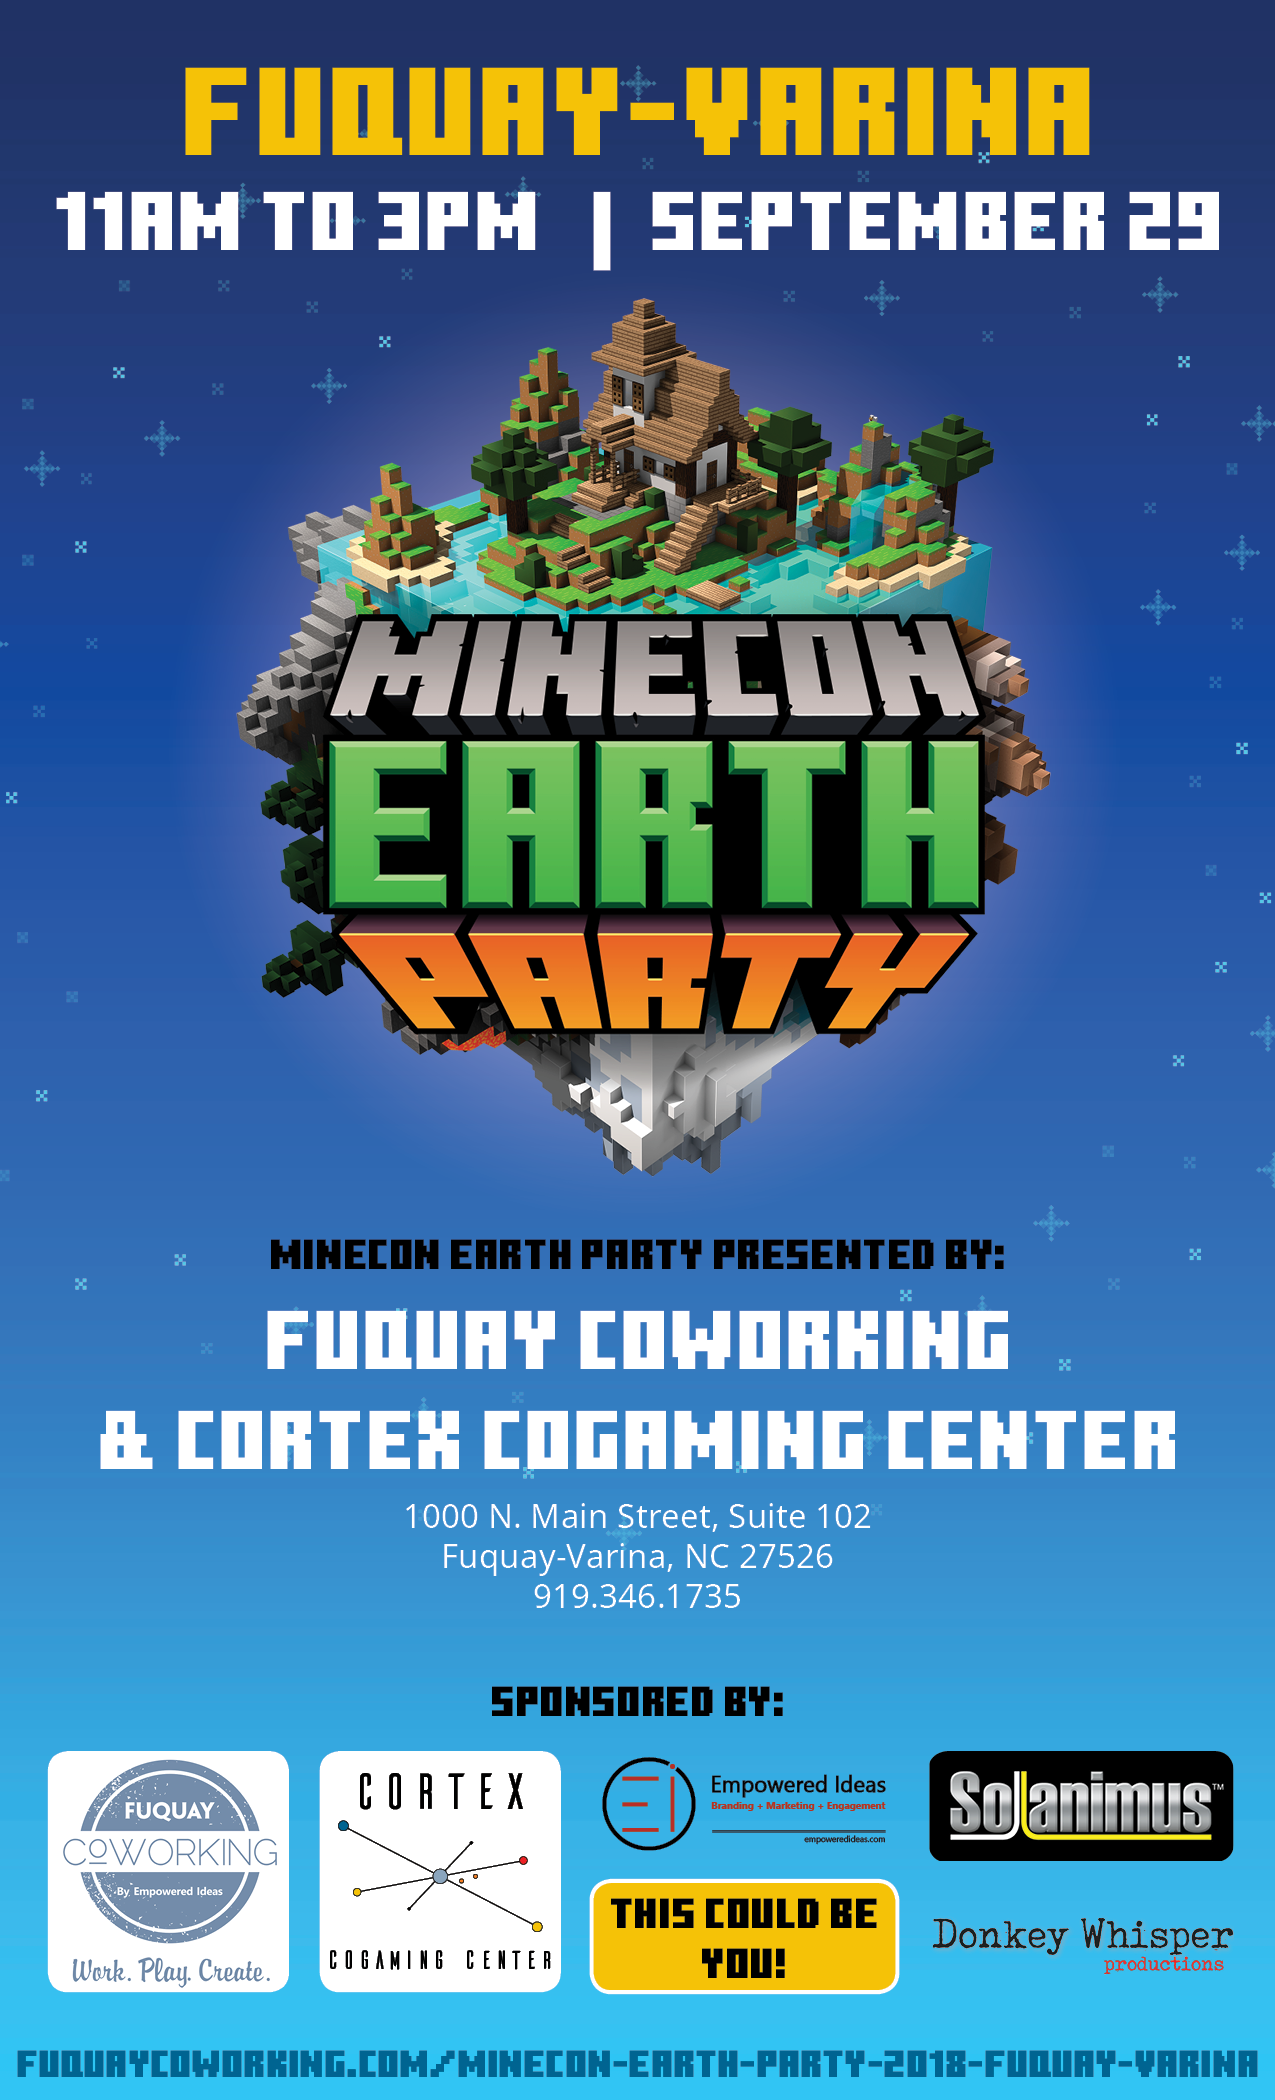 Official MINECON Earth Party, Presented By Fuquay Coworking and Cortex CoGaming Center in Fuquay-Varina, NC